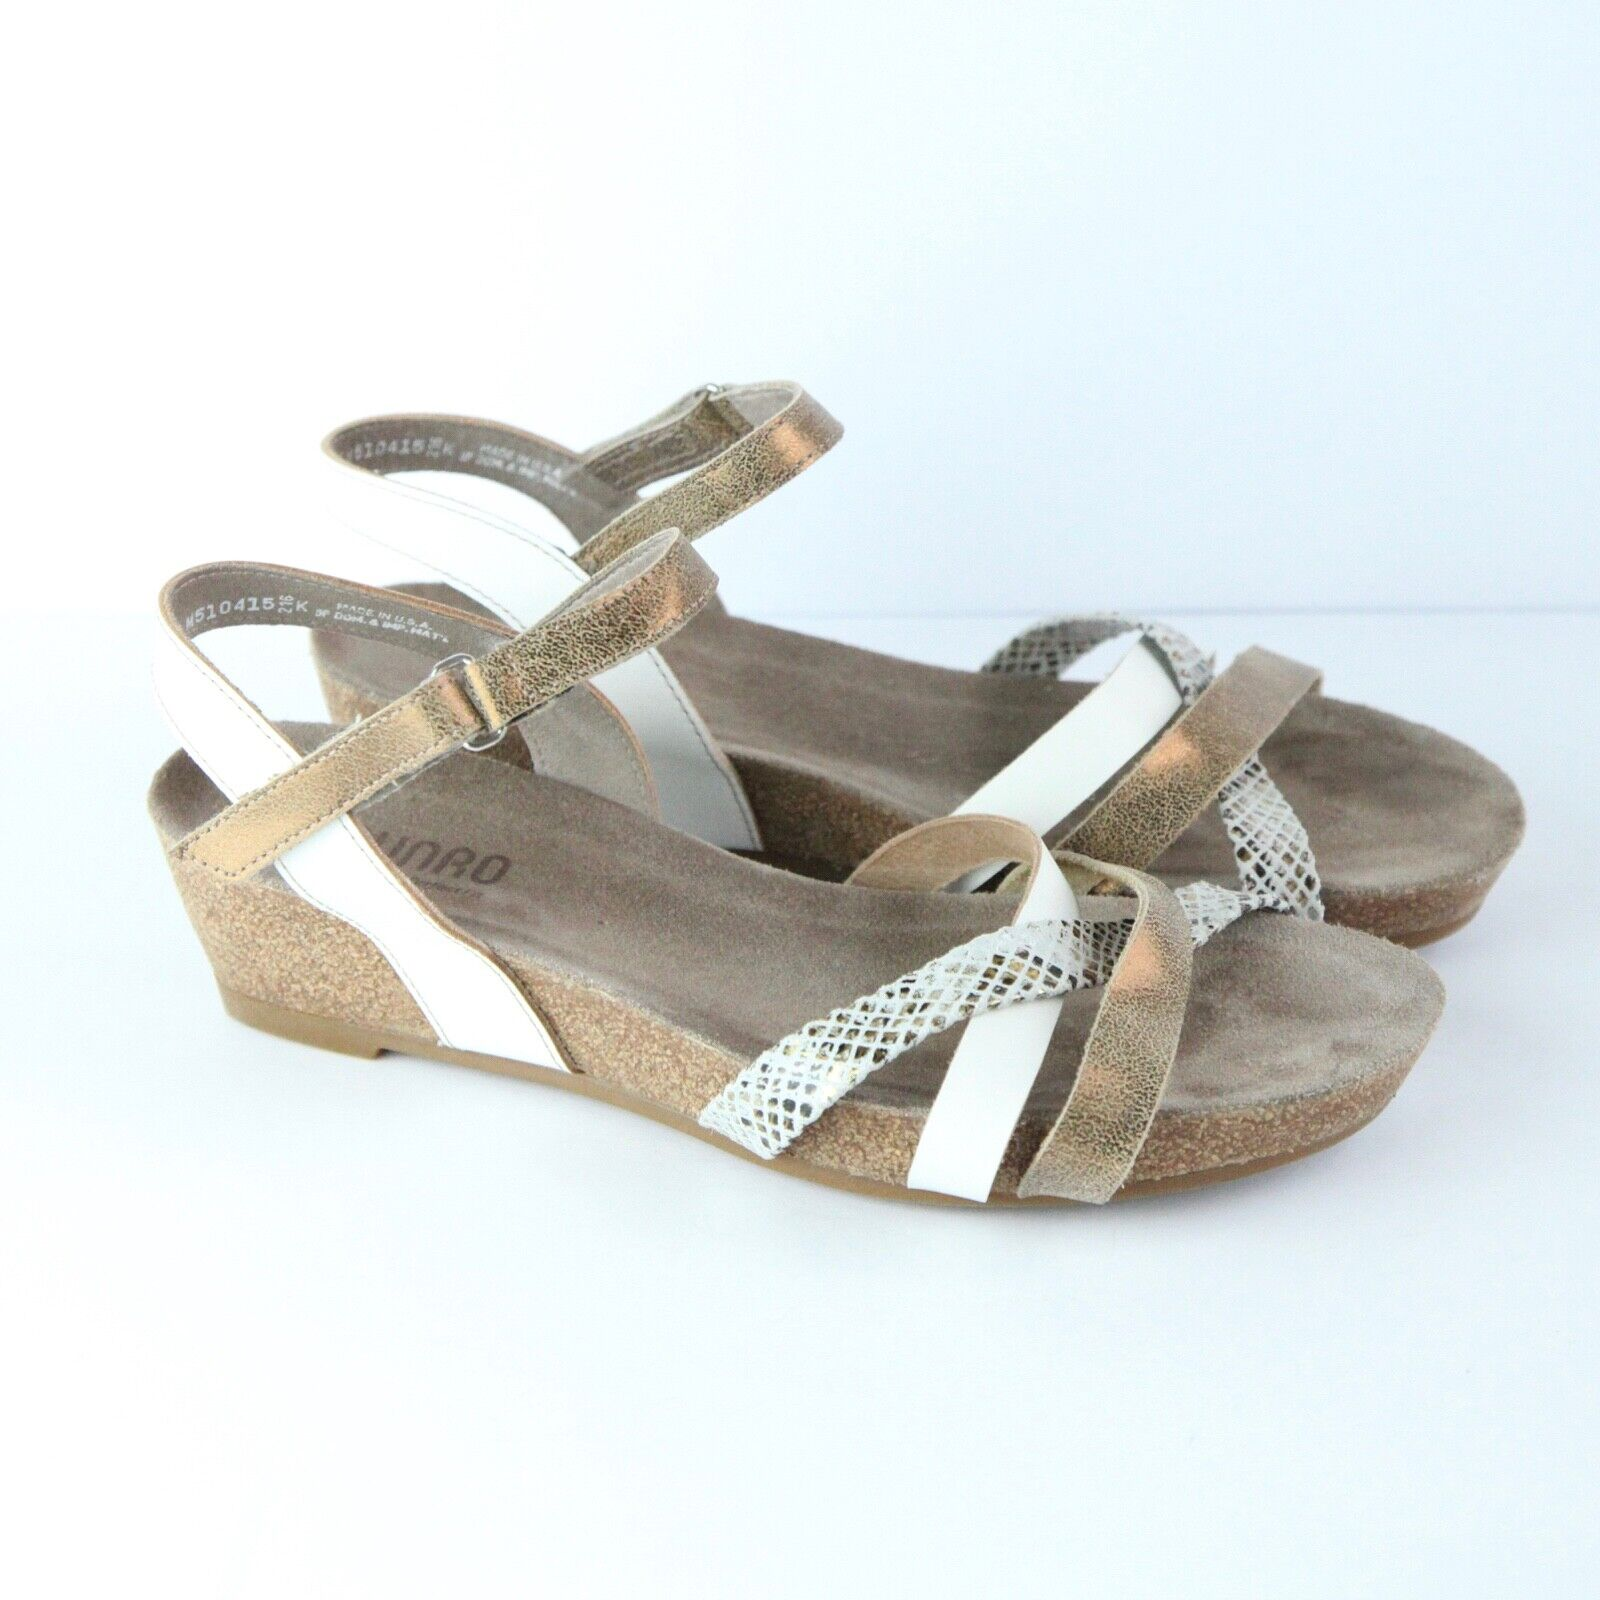 Munro Eden Sandal Cork Wedge Womens 9.5 W Leather Comfort shoes Strappy